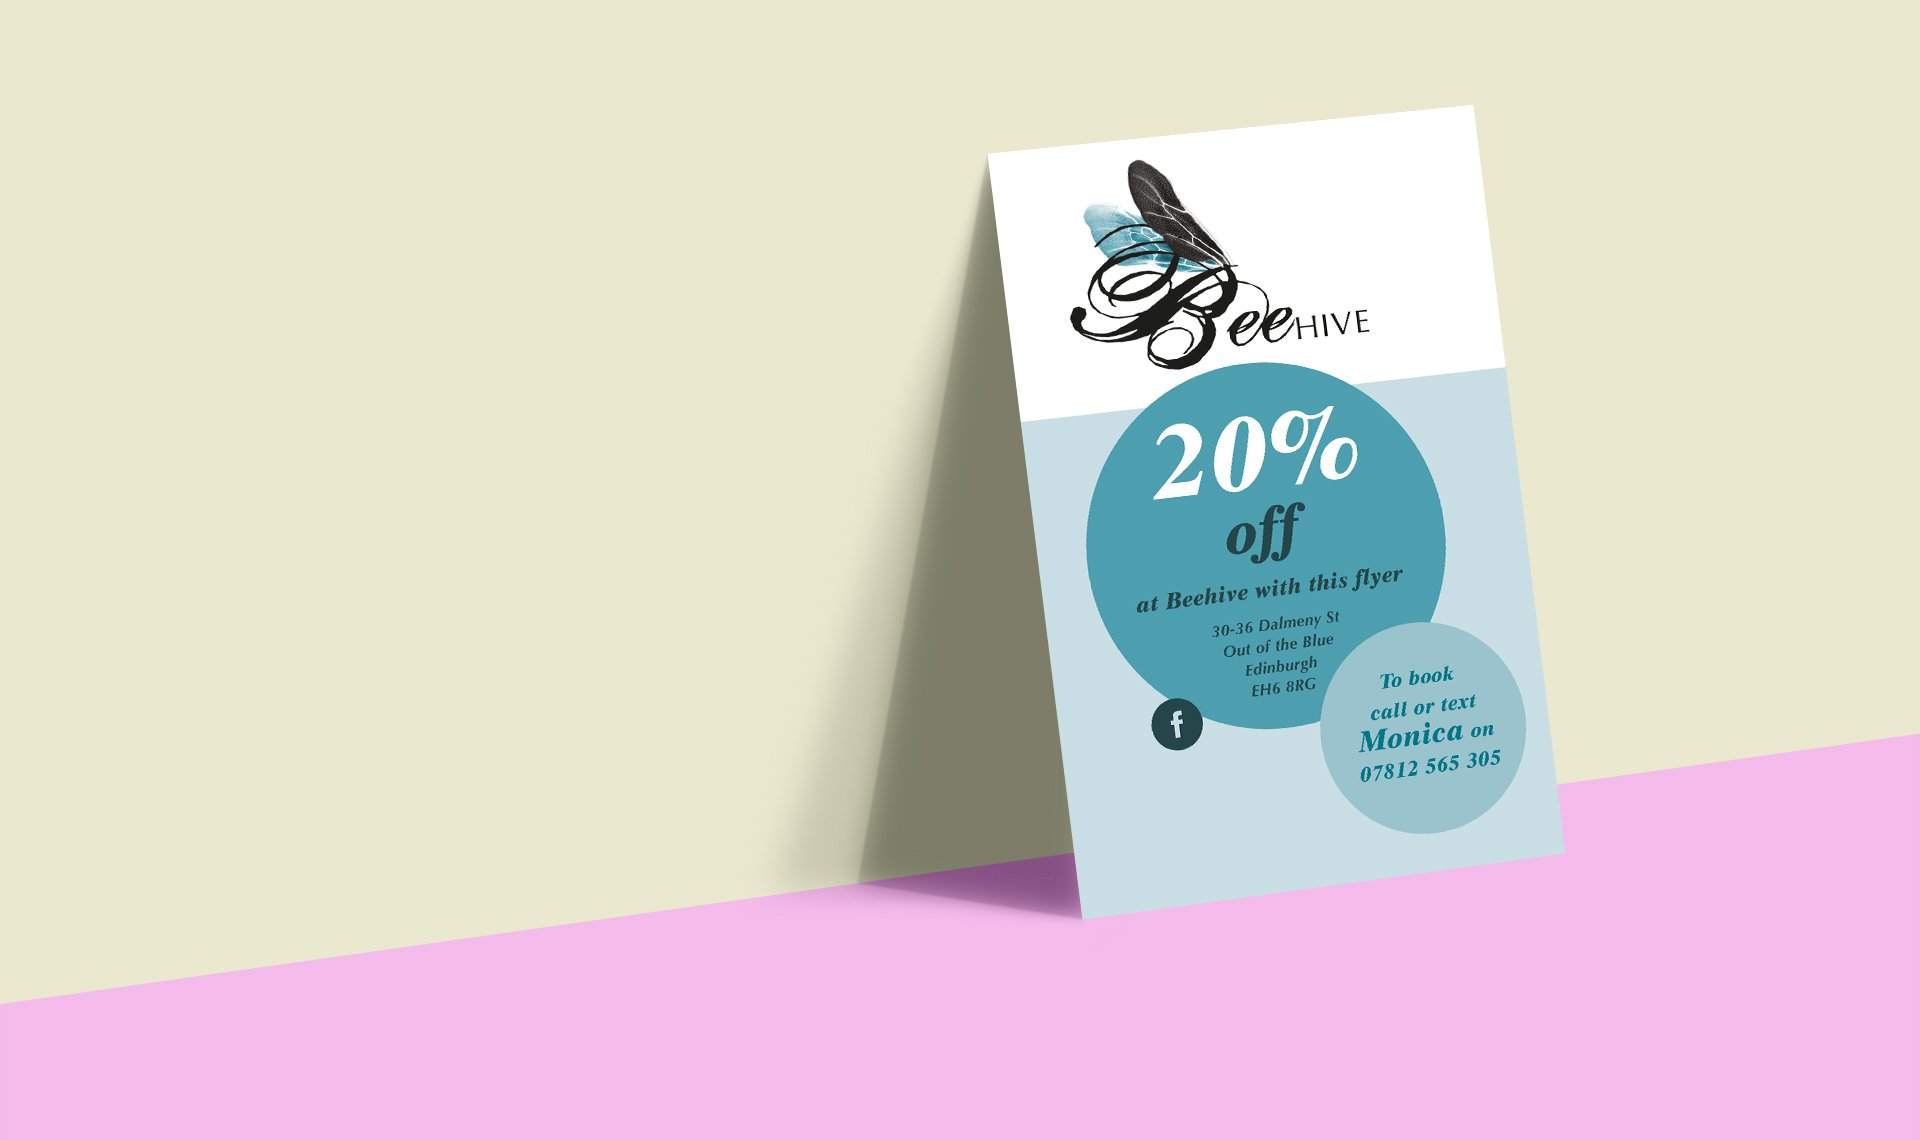 Beehive salon's designed leaflets for 20% off a cut, colour or style